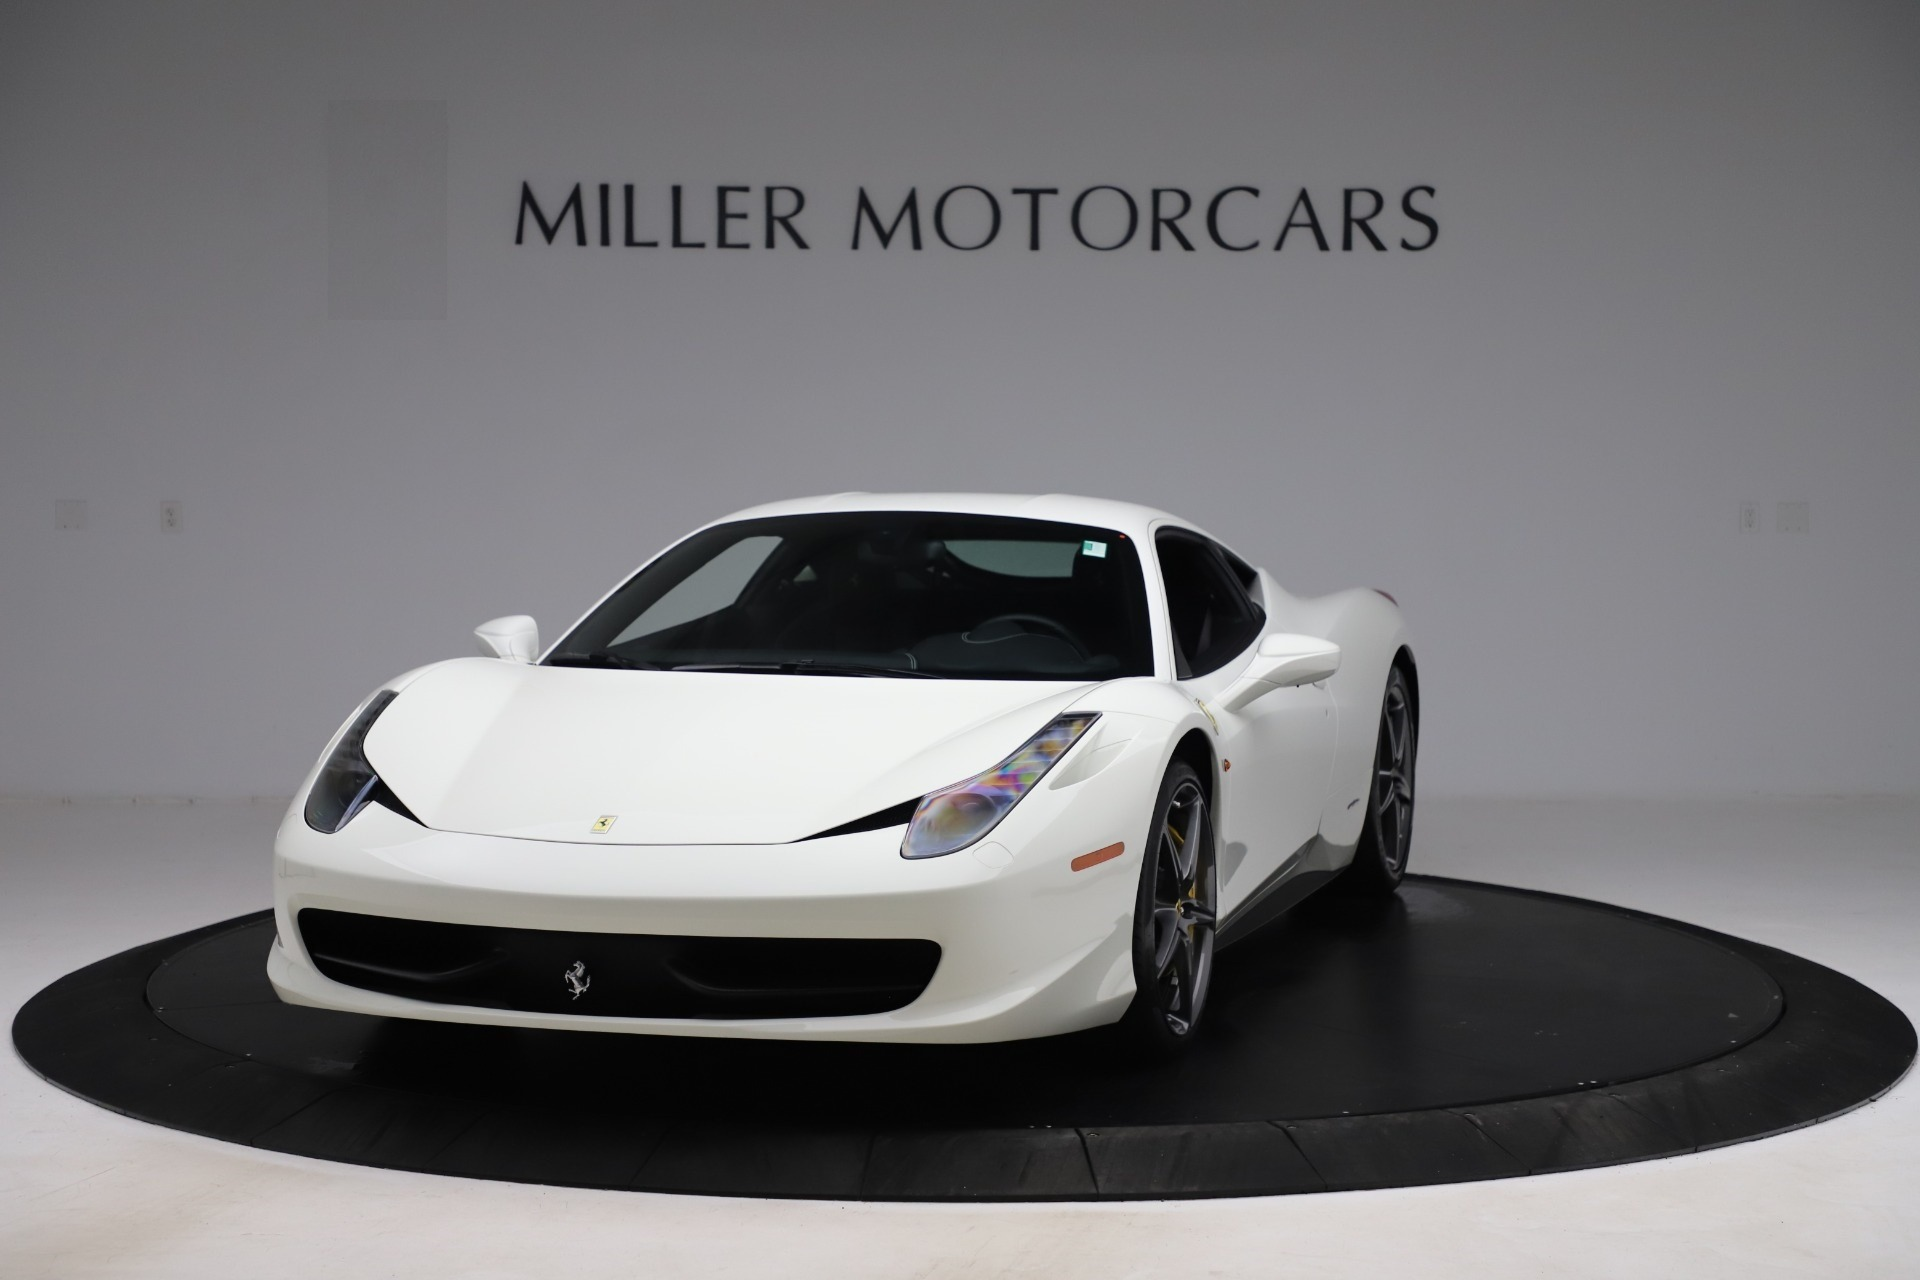 Used 2013 Ferrari 458 Italia for sale $186,900 at Rolls-Royce Motor Cars Greenwich in Greenwich CT 06830 1